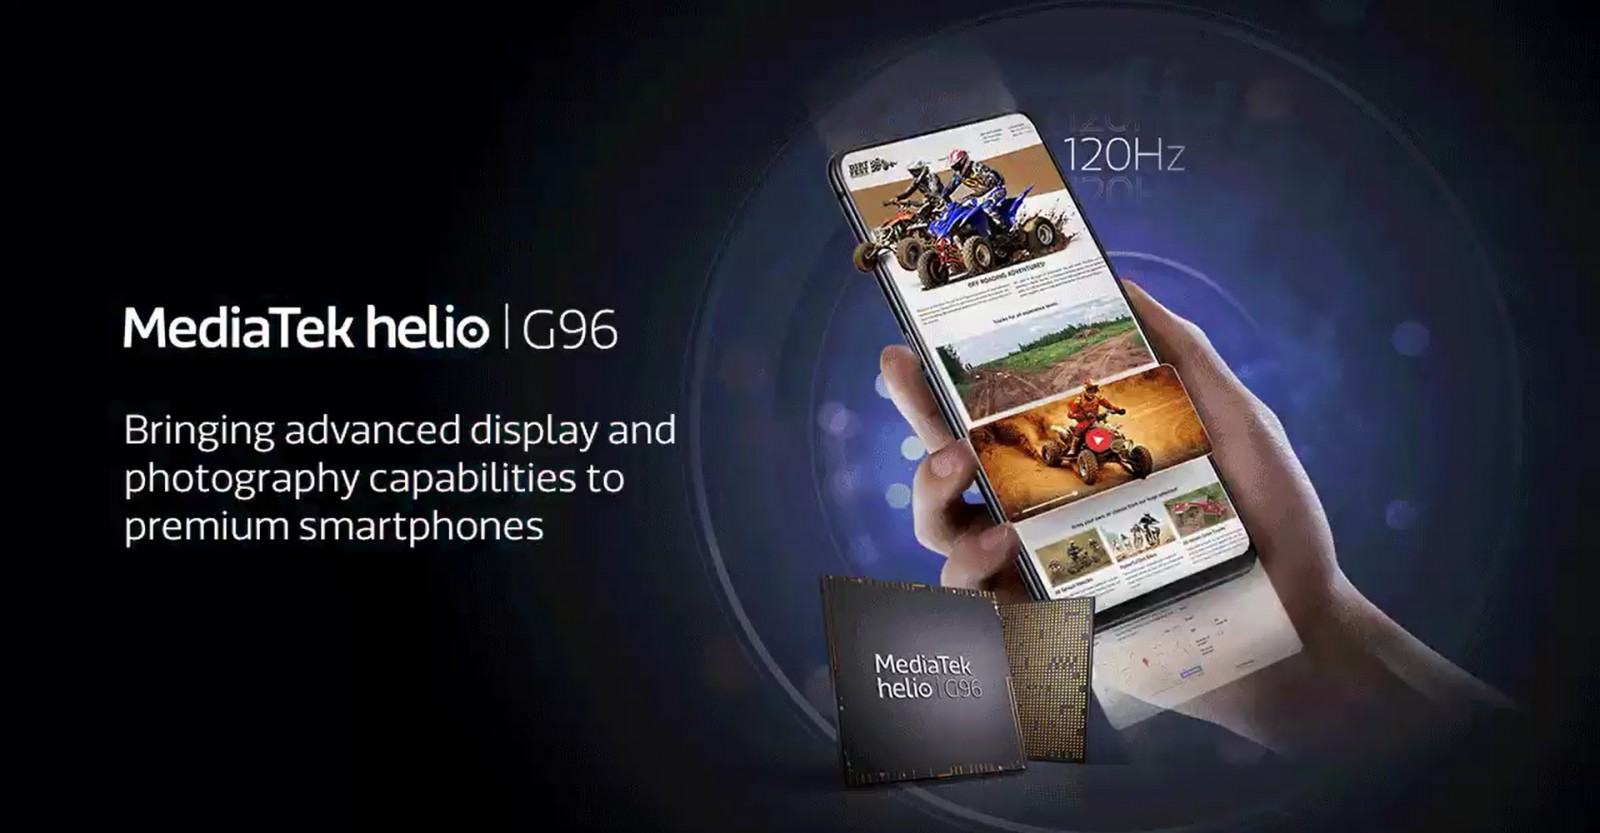 Helio G96 Chip Launched With Support for 120Hz Displays, 108MP Cameras, 4K Video Recording